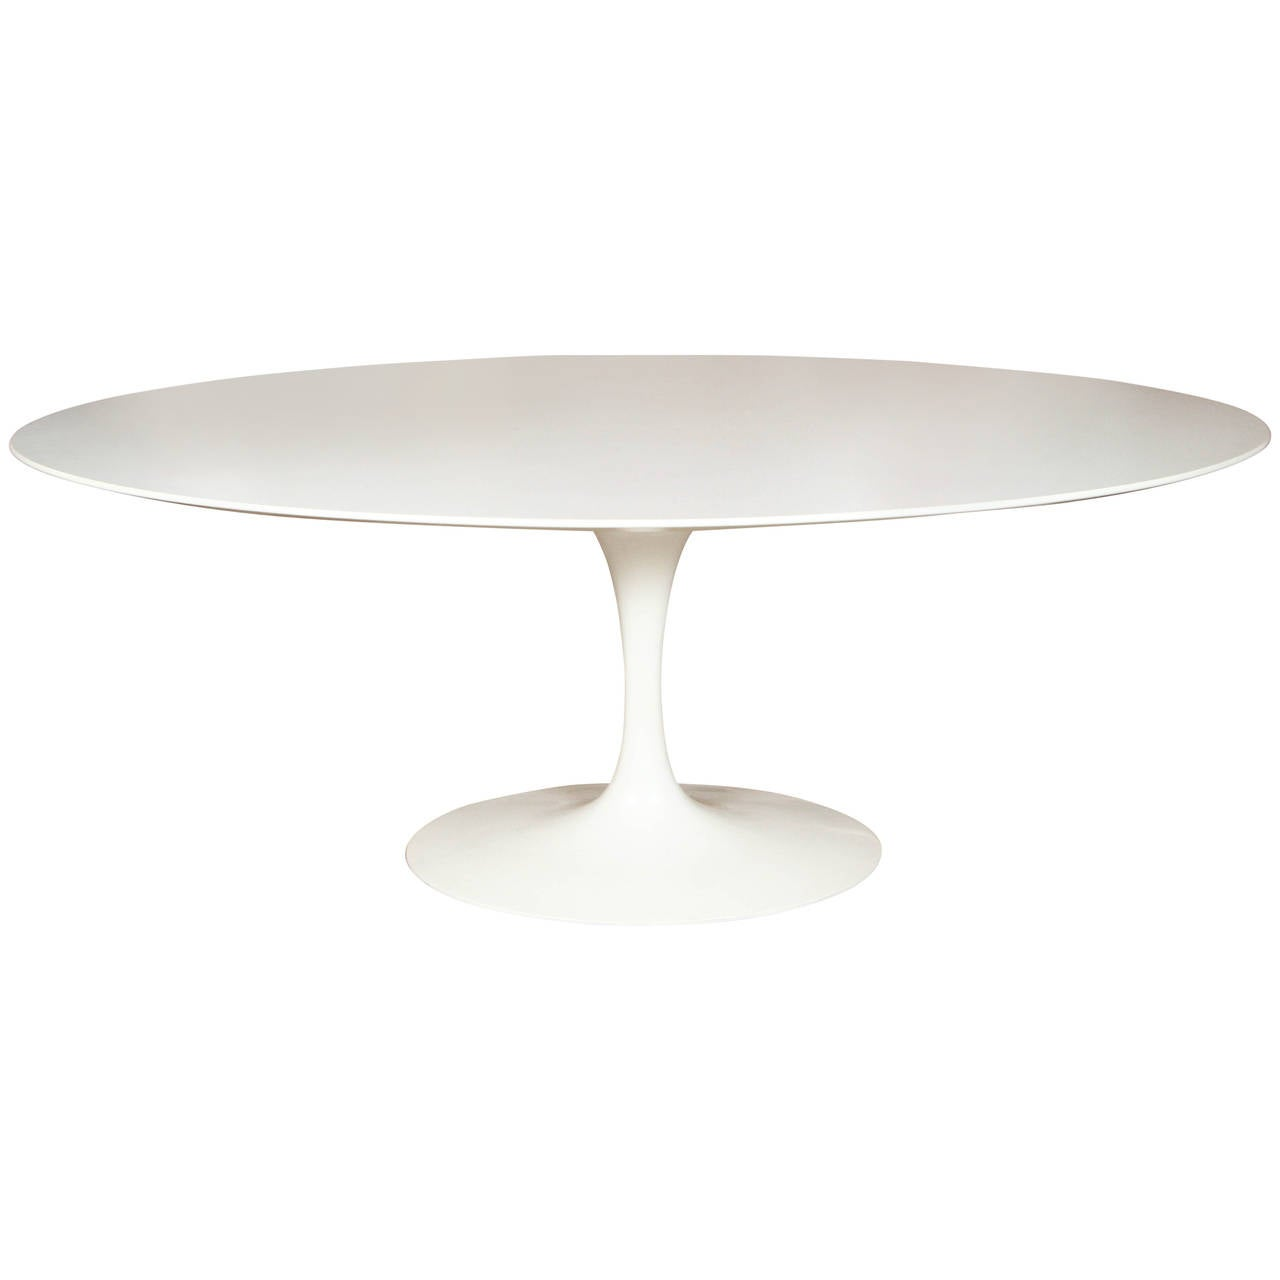 Saarinen Oval Tulip Table At 1stdibs